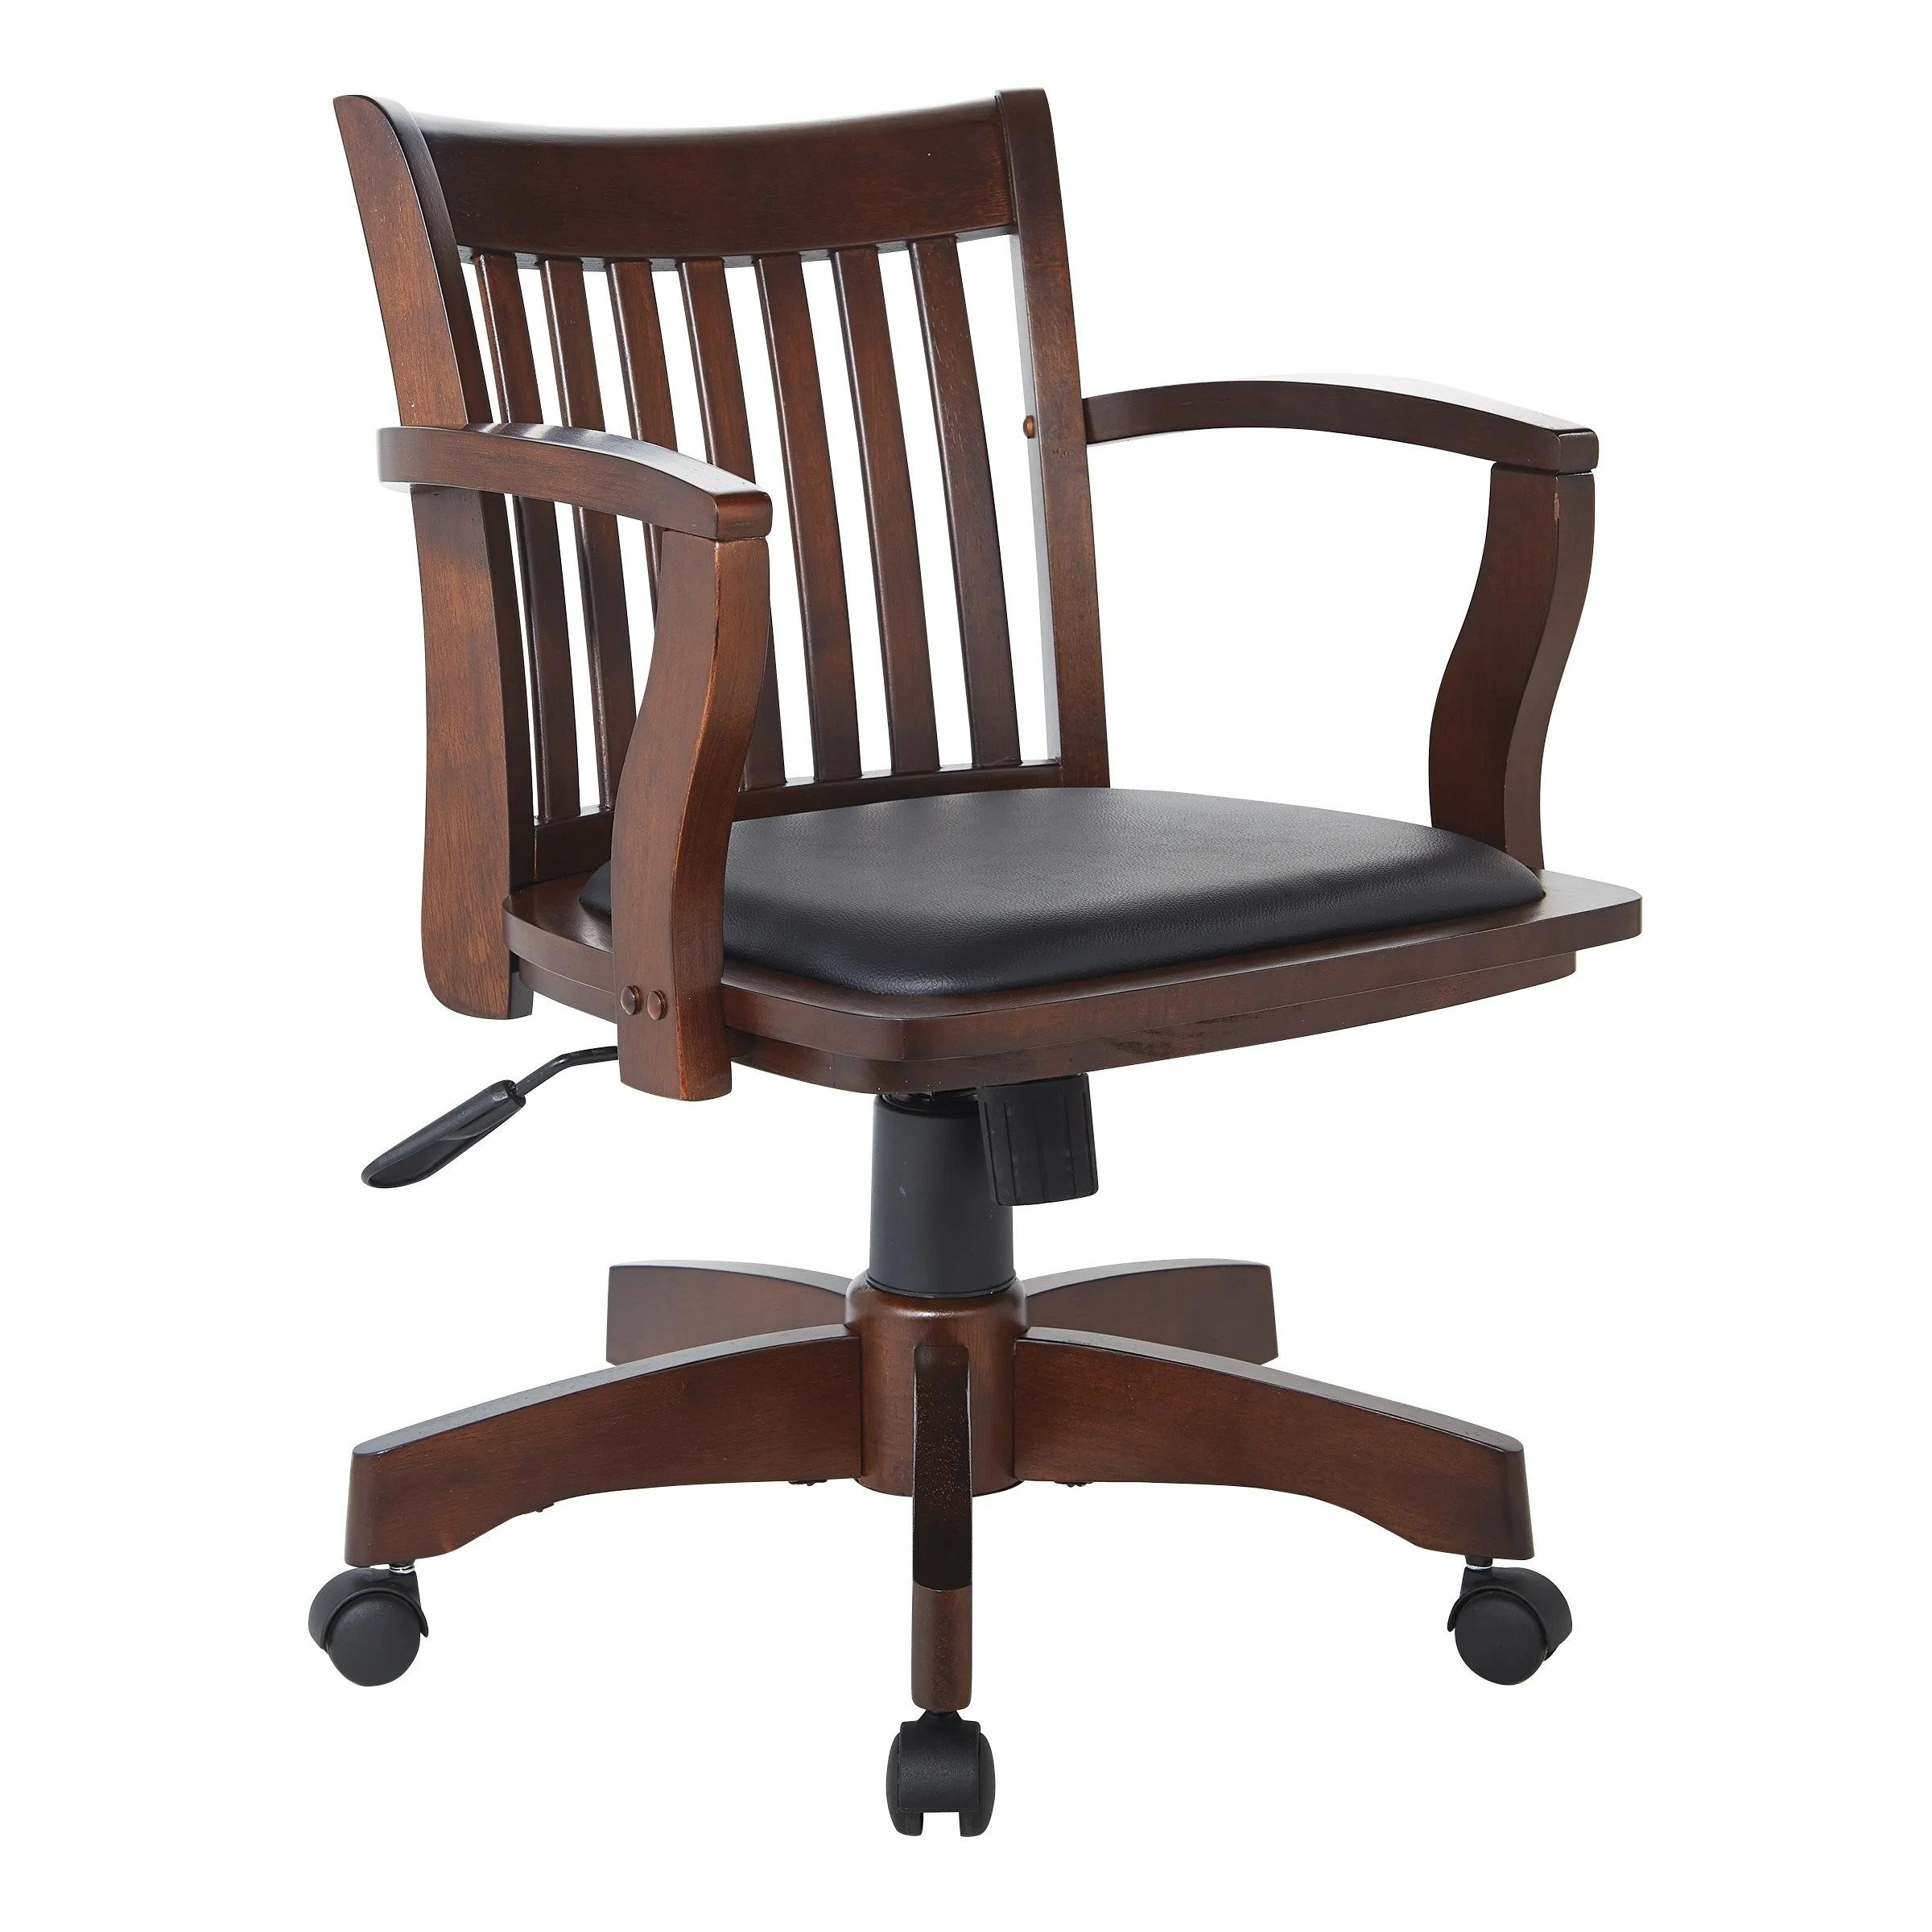 Wooden Bankers Chair Buy Bankers Chair Online At Overstock Our Best Home Office